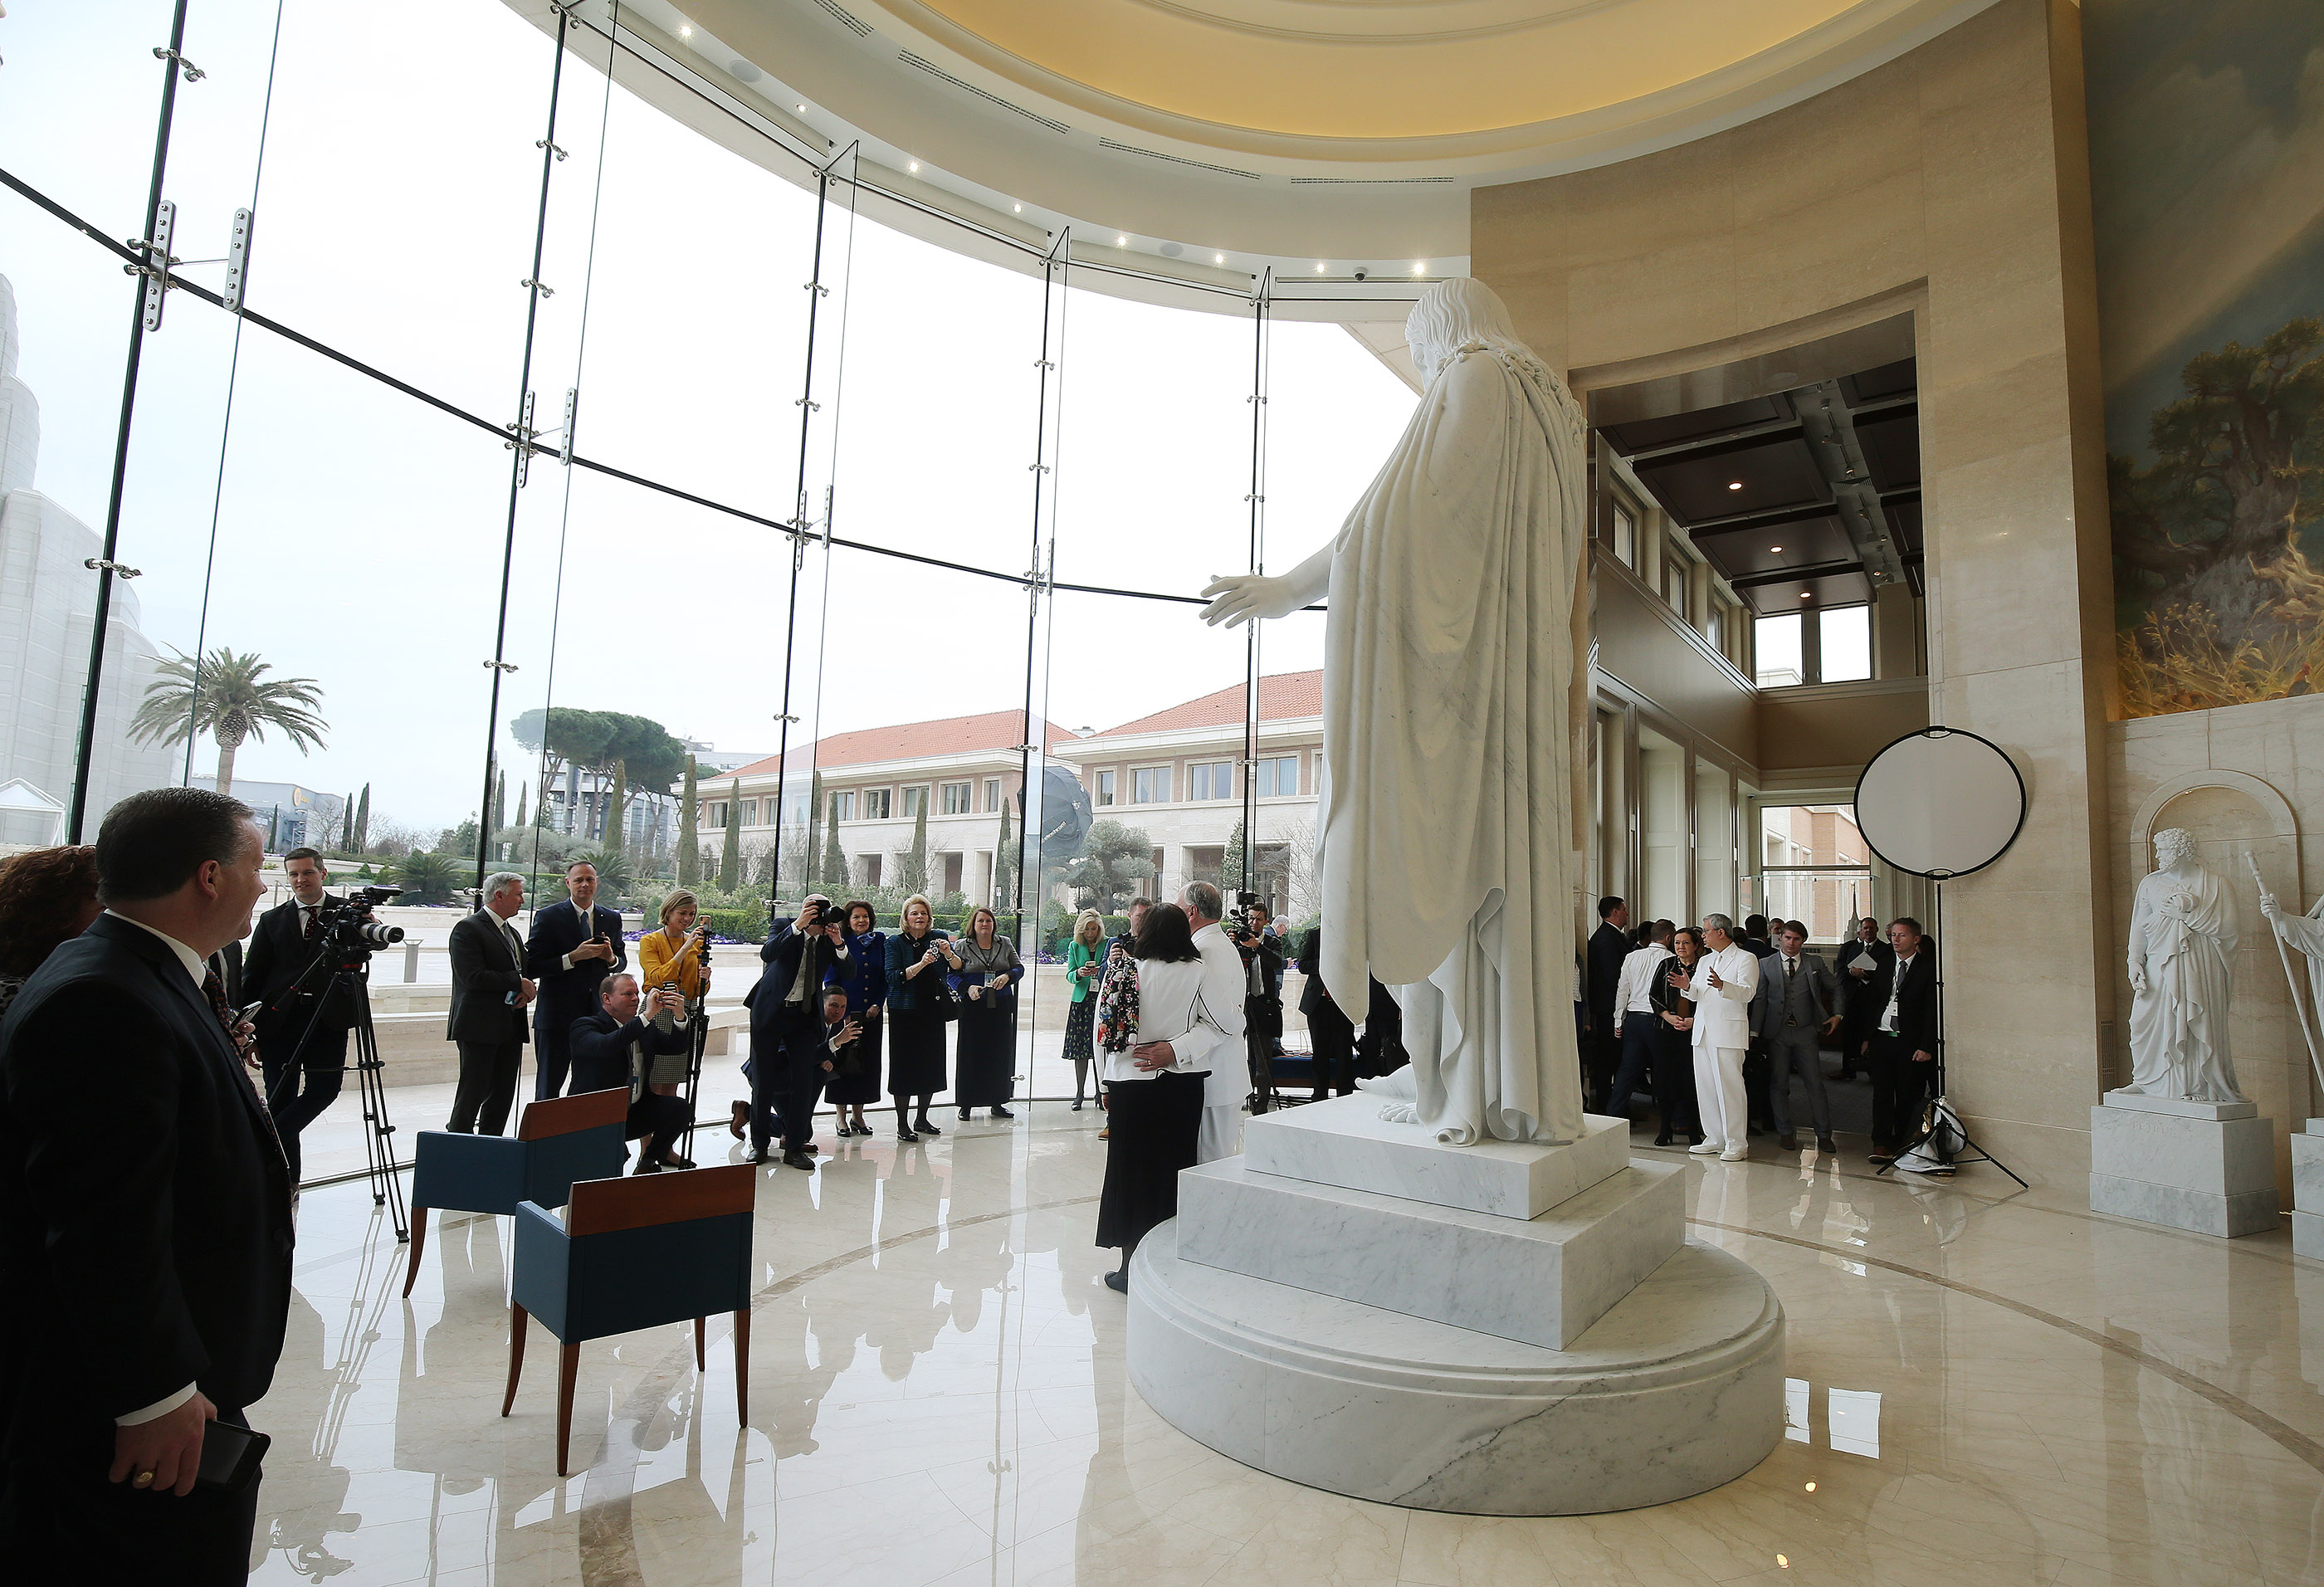 Photographs are taken of members of the First Presidency and the Quorum of the Twelve Apostles of The Church of Jesus Christ of Latter-day Saints in the Rome Italy Temple visitors' center in Rome, Italy on Monday, March 11, 2019.